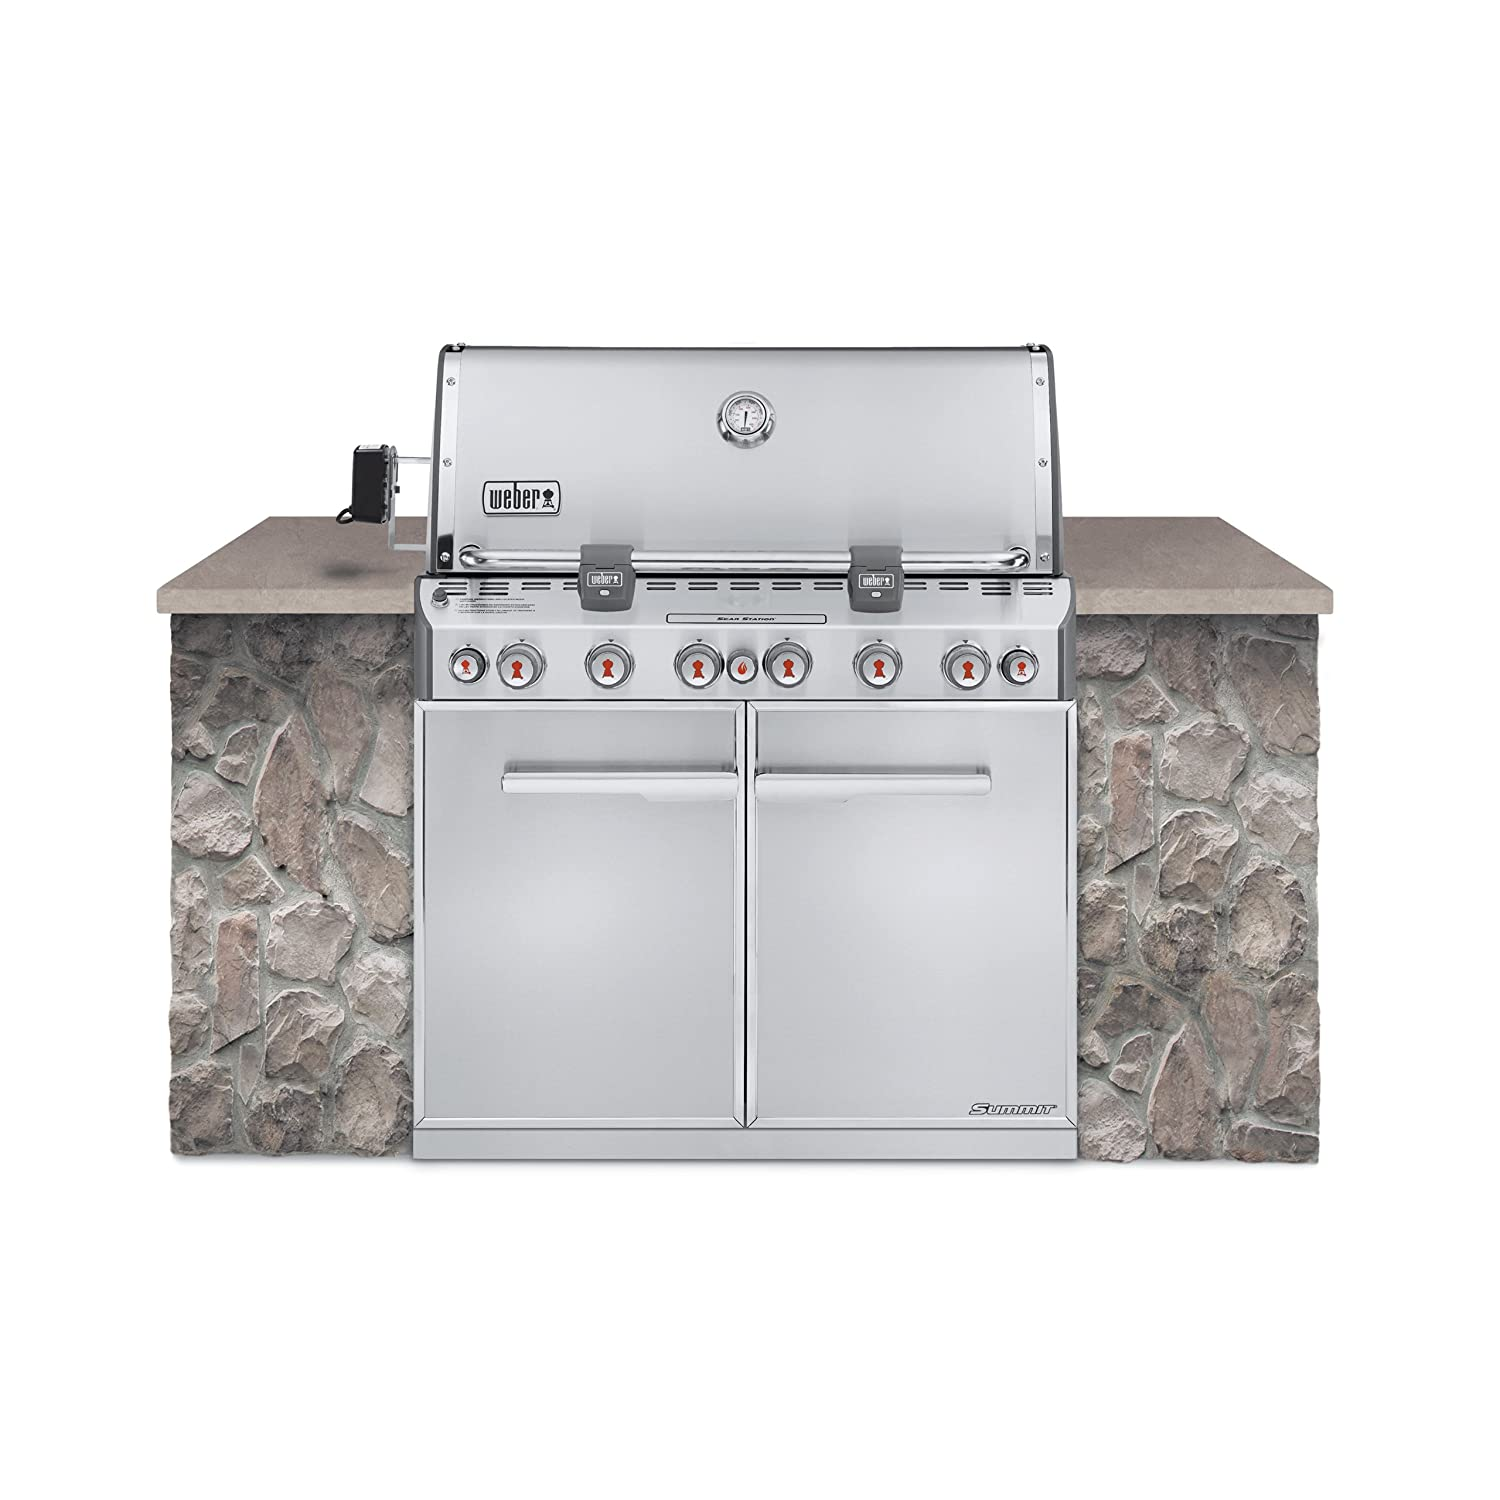 Built-in Side Burner Cover Black Covermates 3 YR Warranty Elite Collection Year Around Protection 12.5W x 19.5D x 3.5H